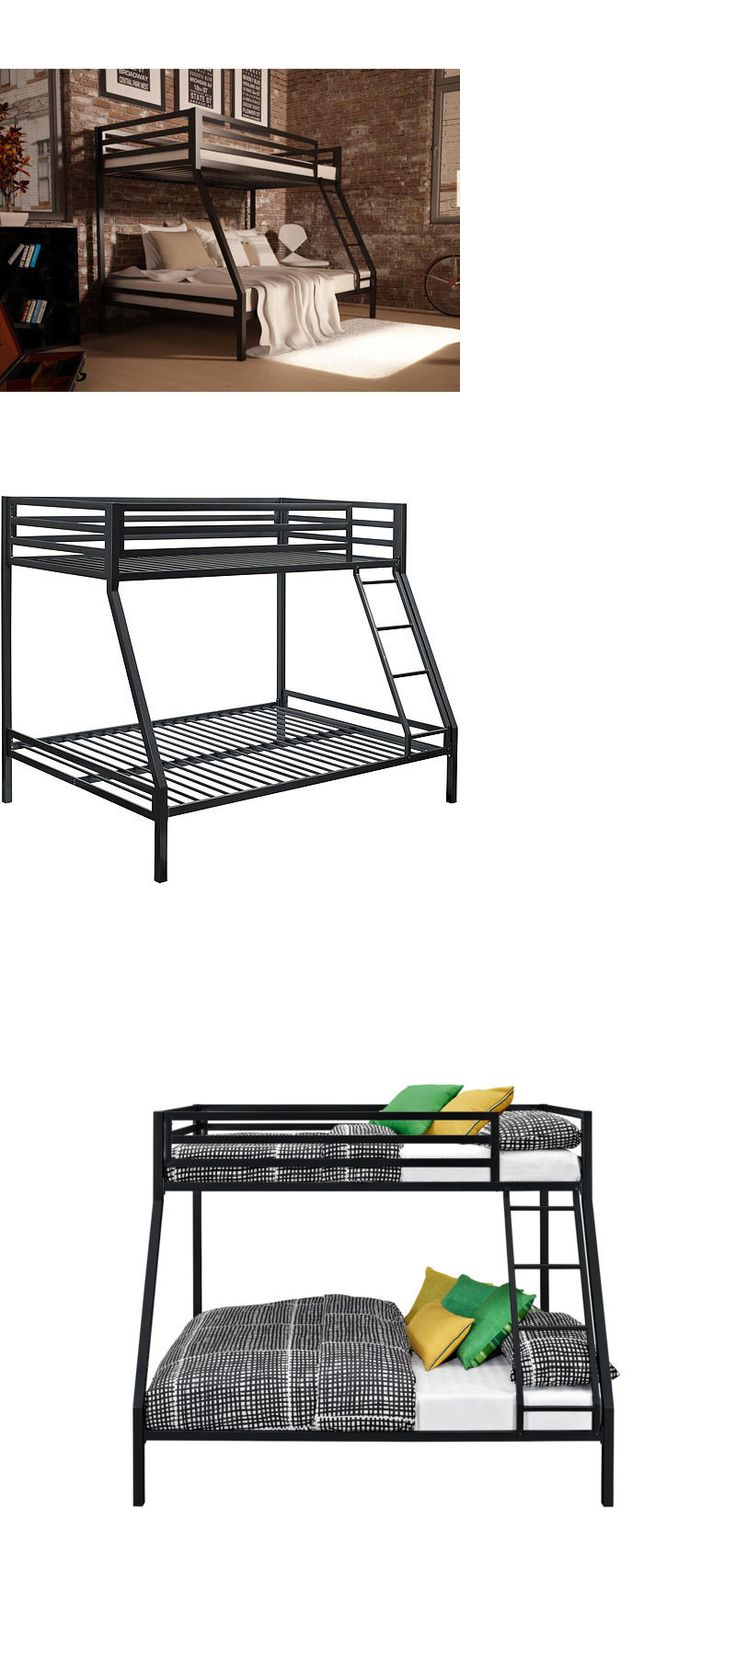 1000 ideas about black bunk beds on pinterest rope ladder bunk rooms and bunk bed rooms. Black Bedroom Furniture Sets. Home Design Ideas